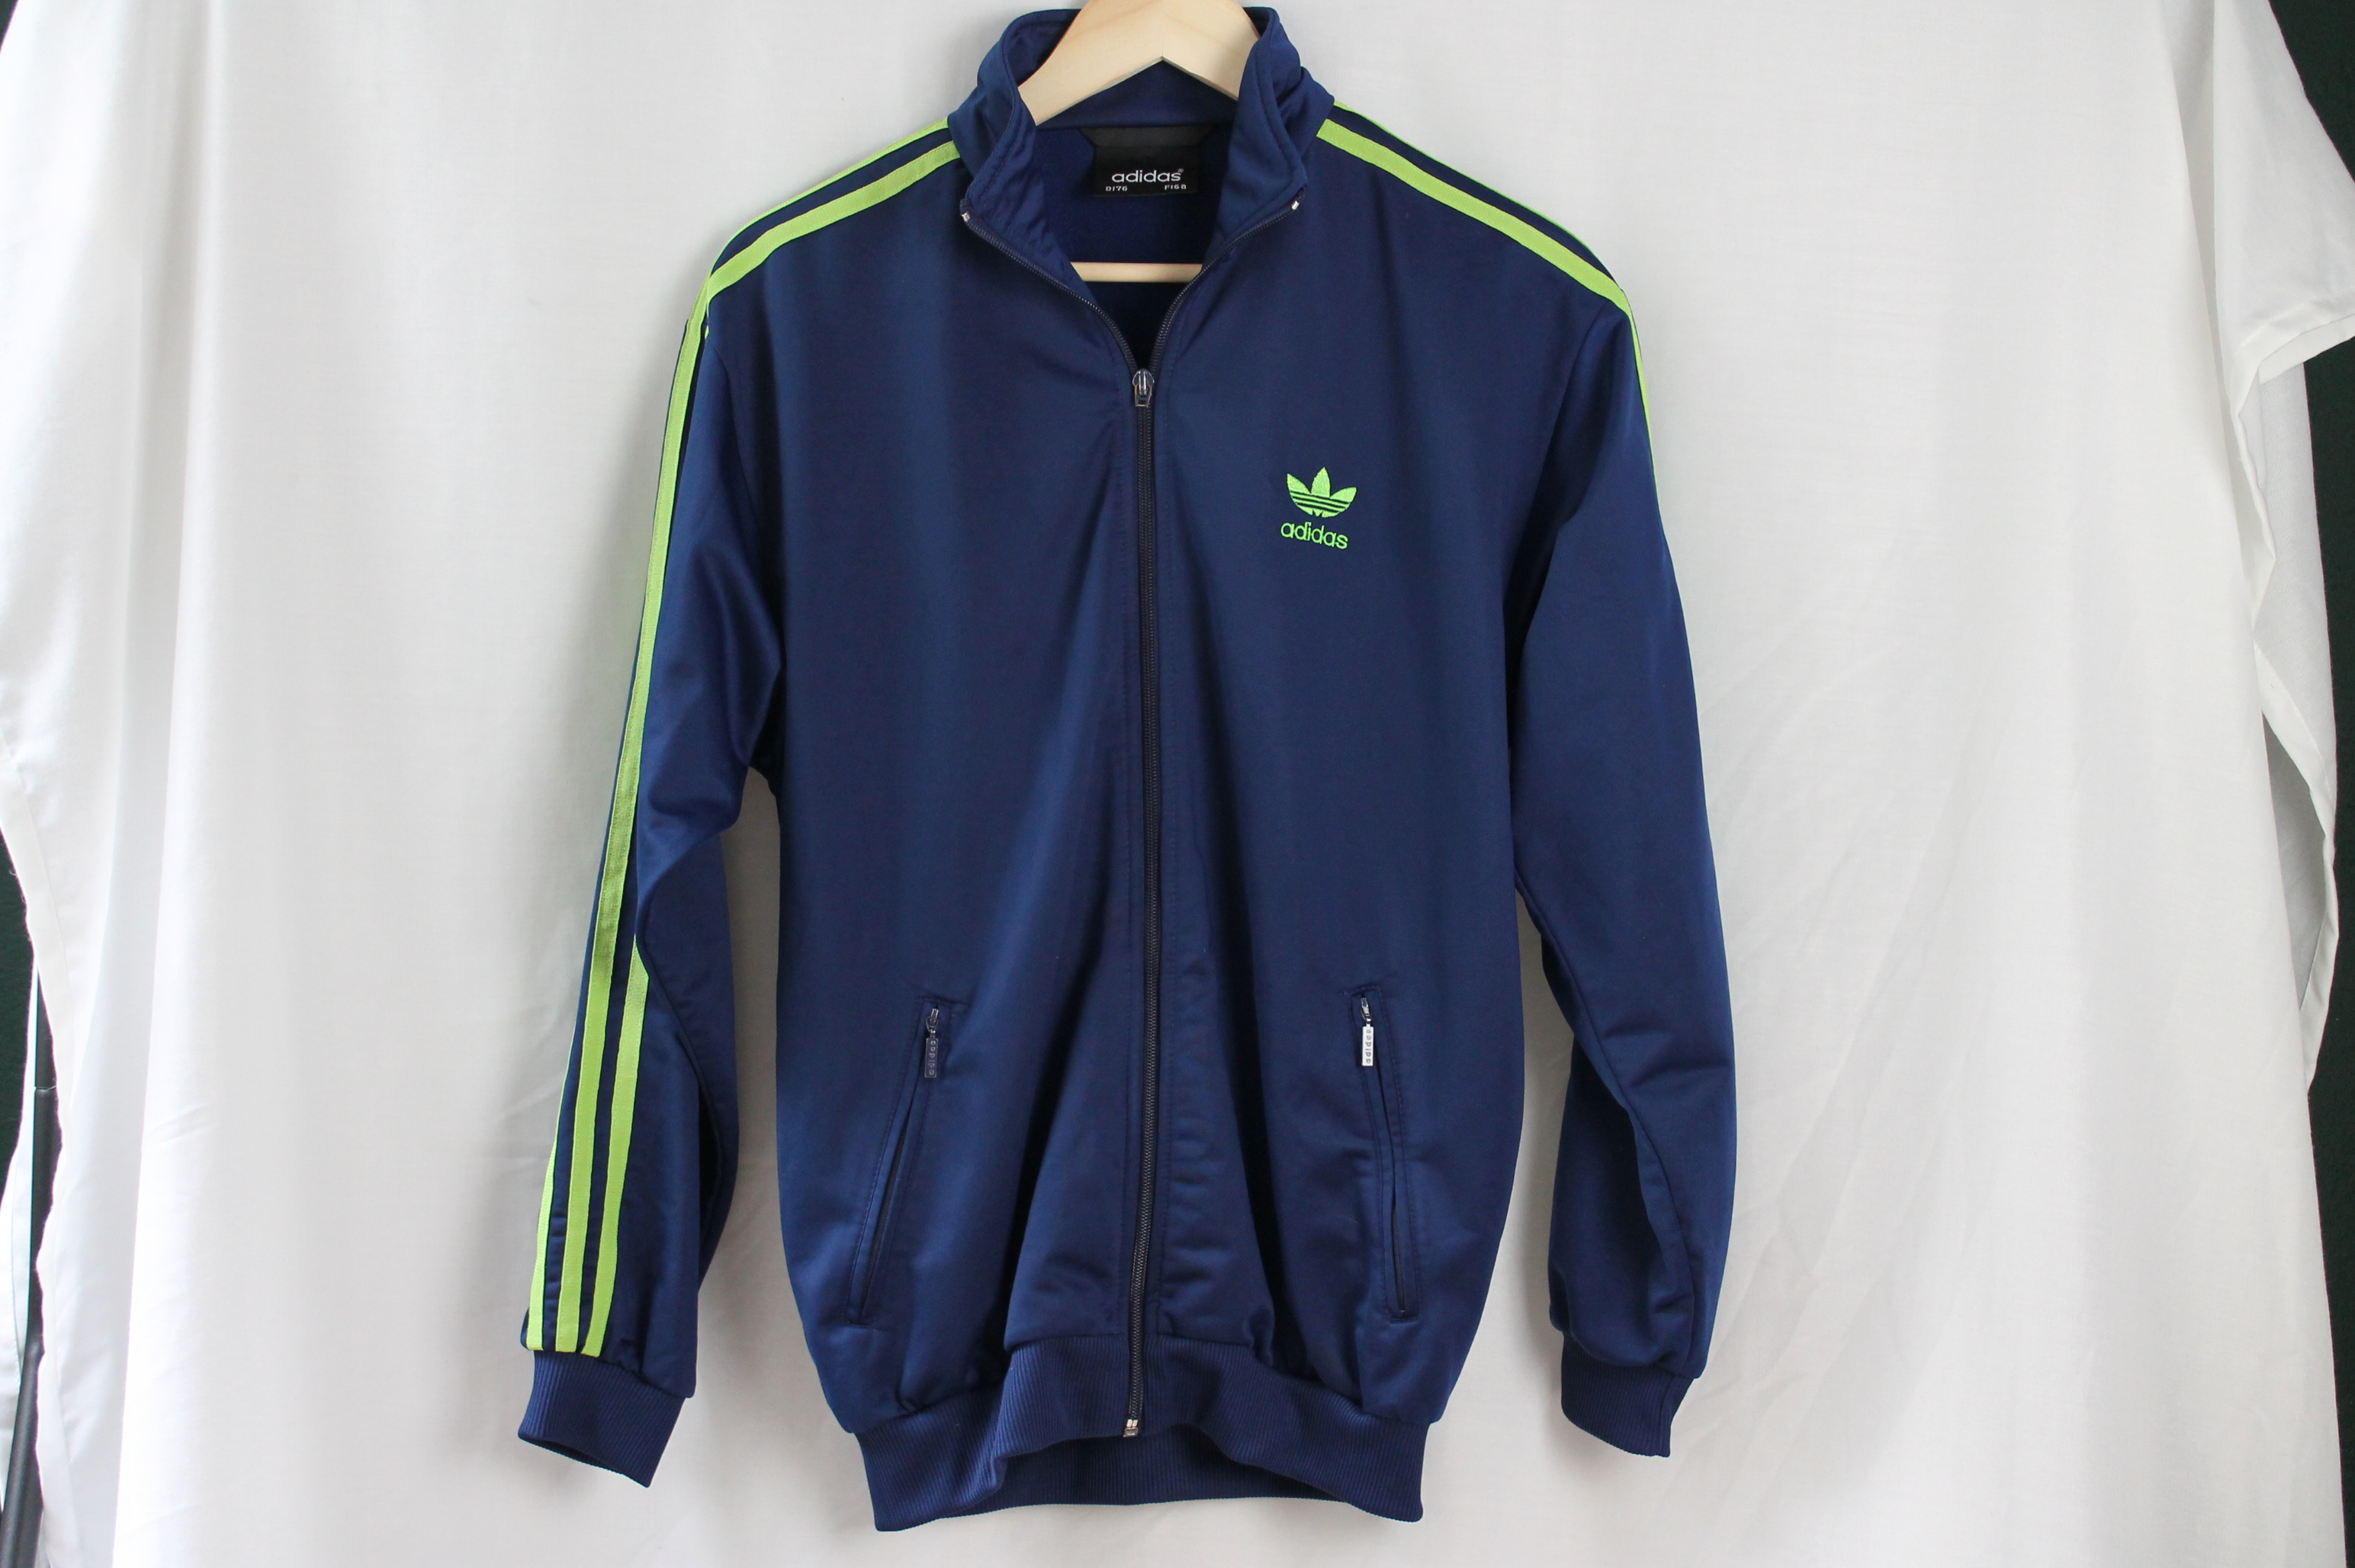 Adidas size man S woman M